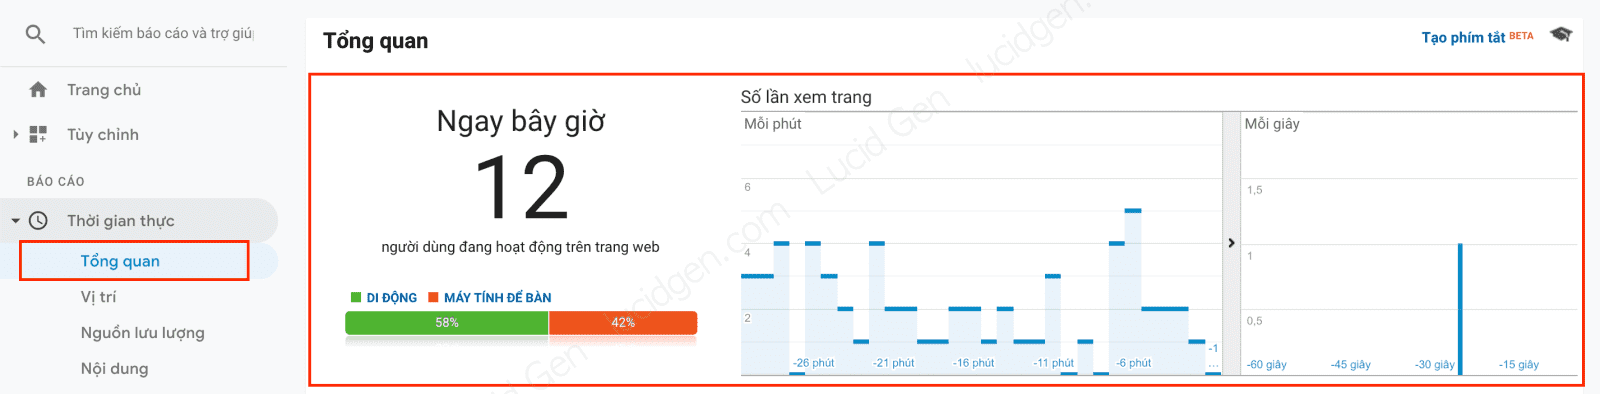 How to check if Google Analytics is working - Check Google Analytics Old Version